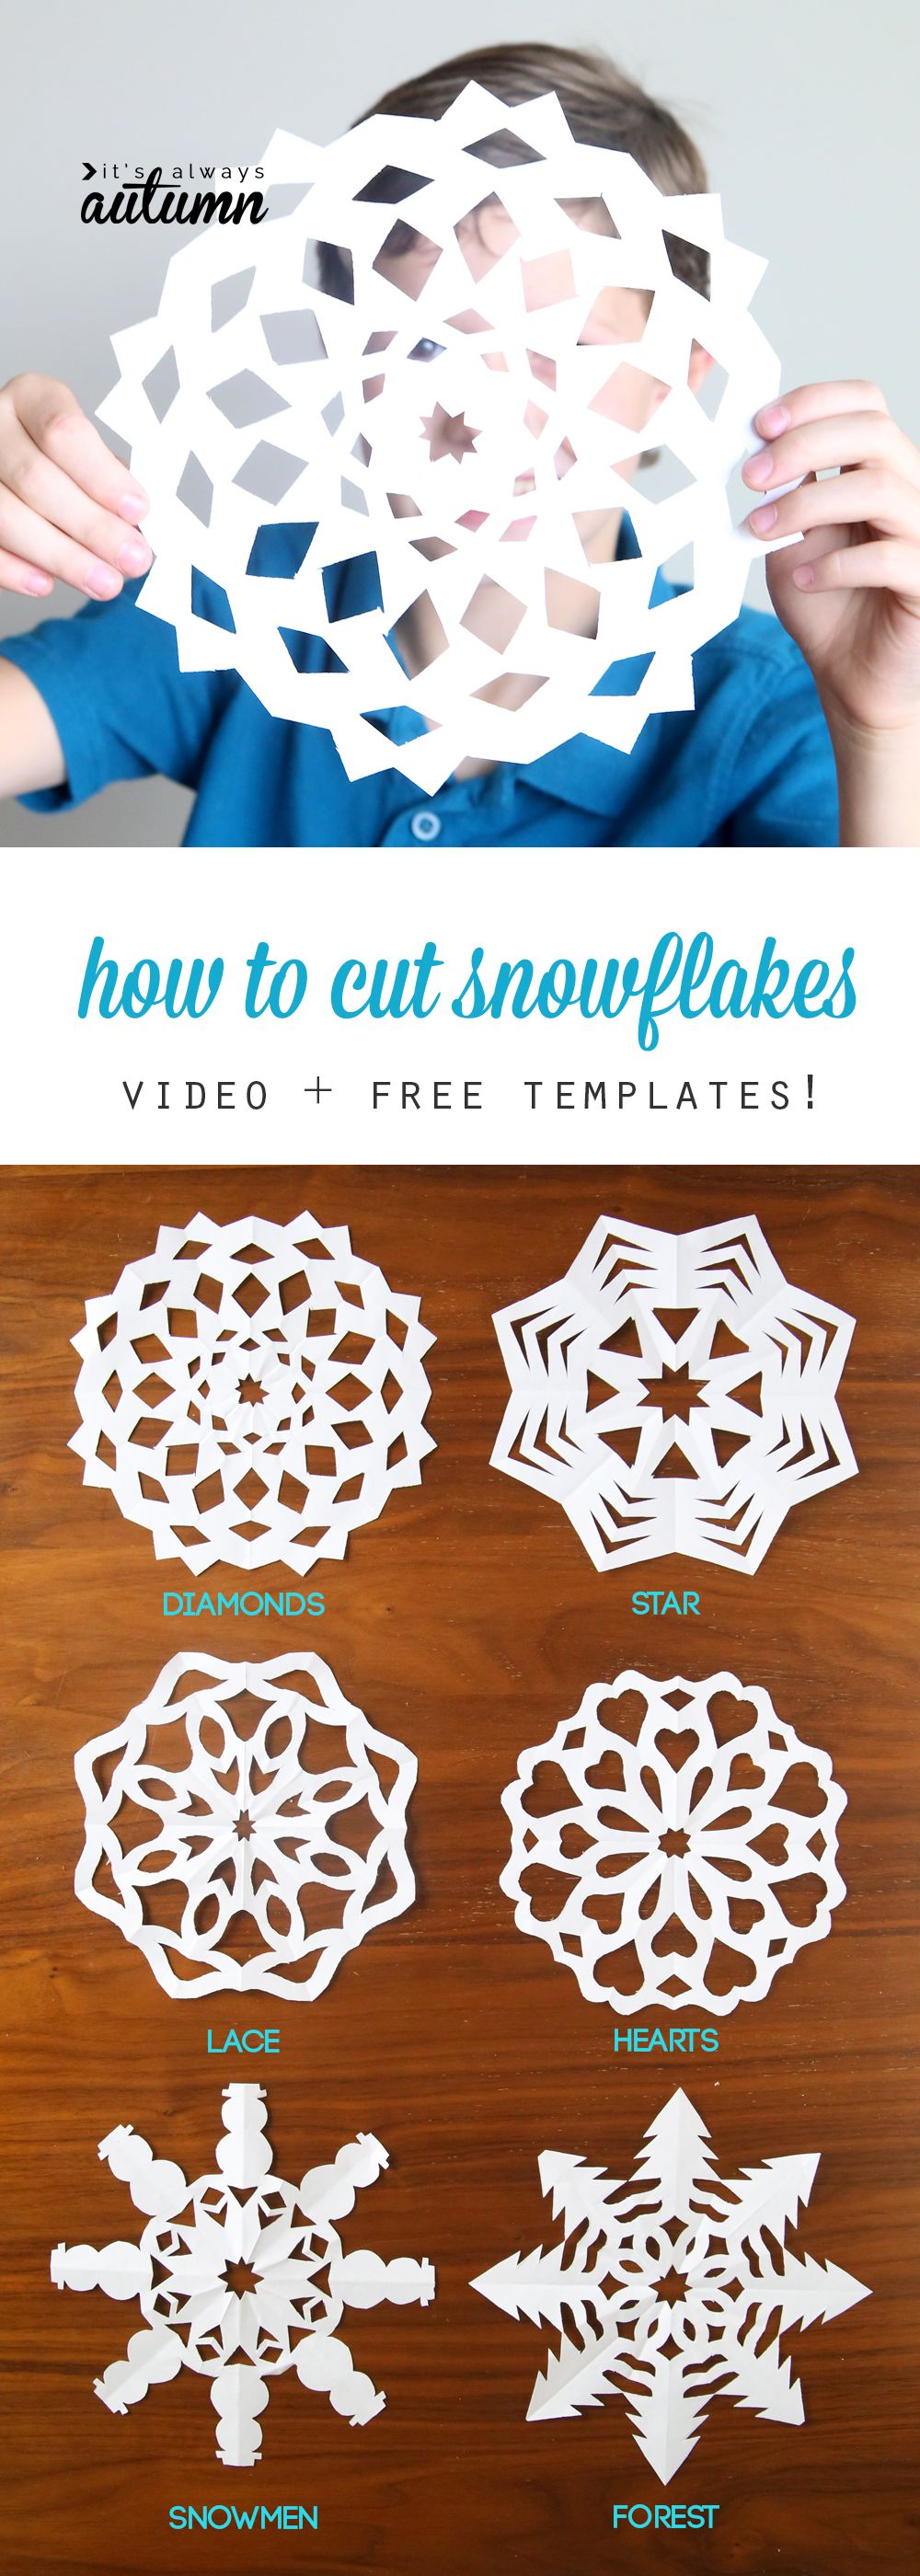 Cutting out snowflakes is one of our favorite holiday traditions!